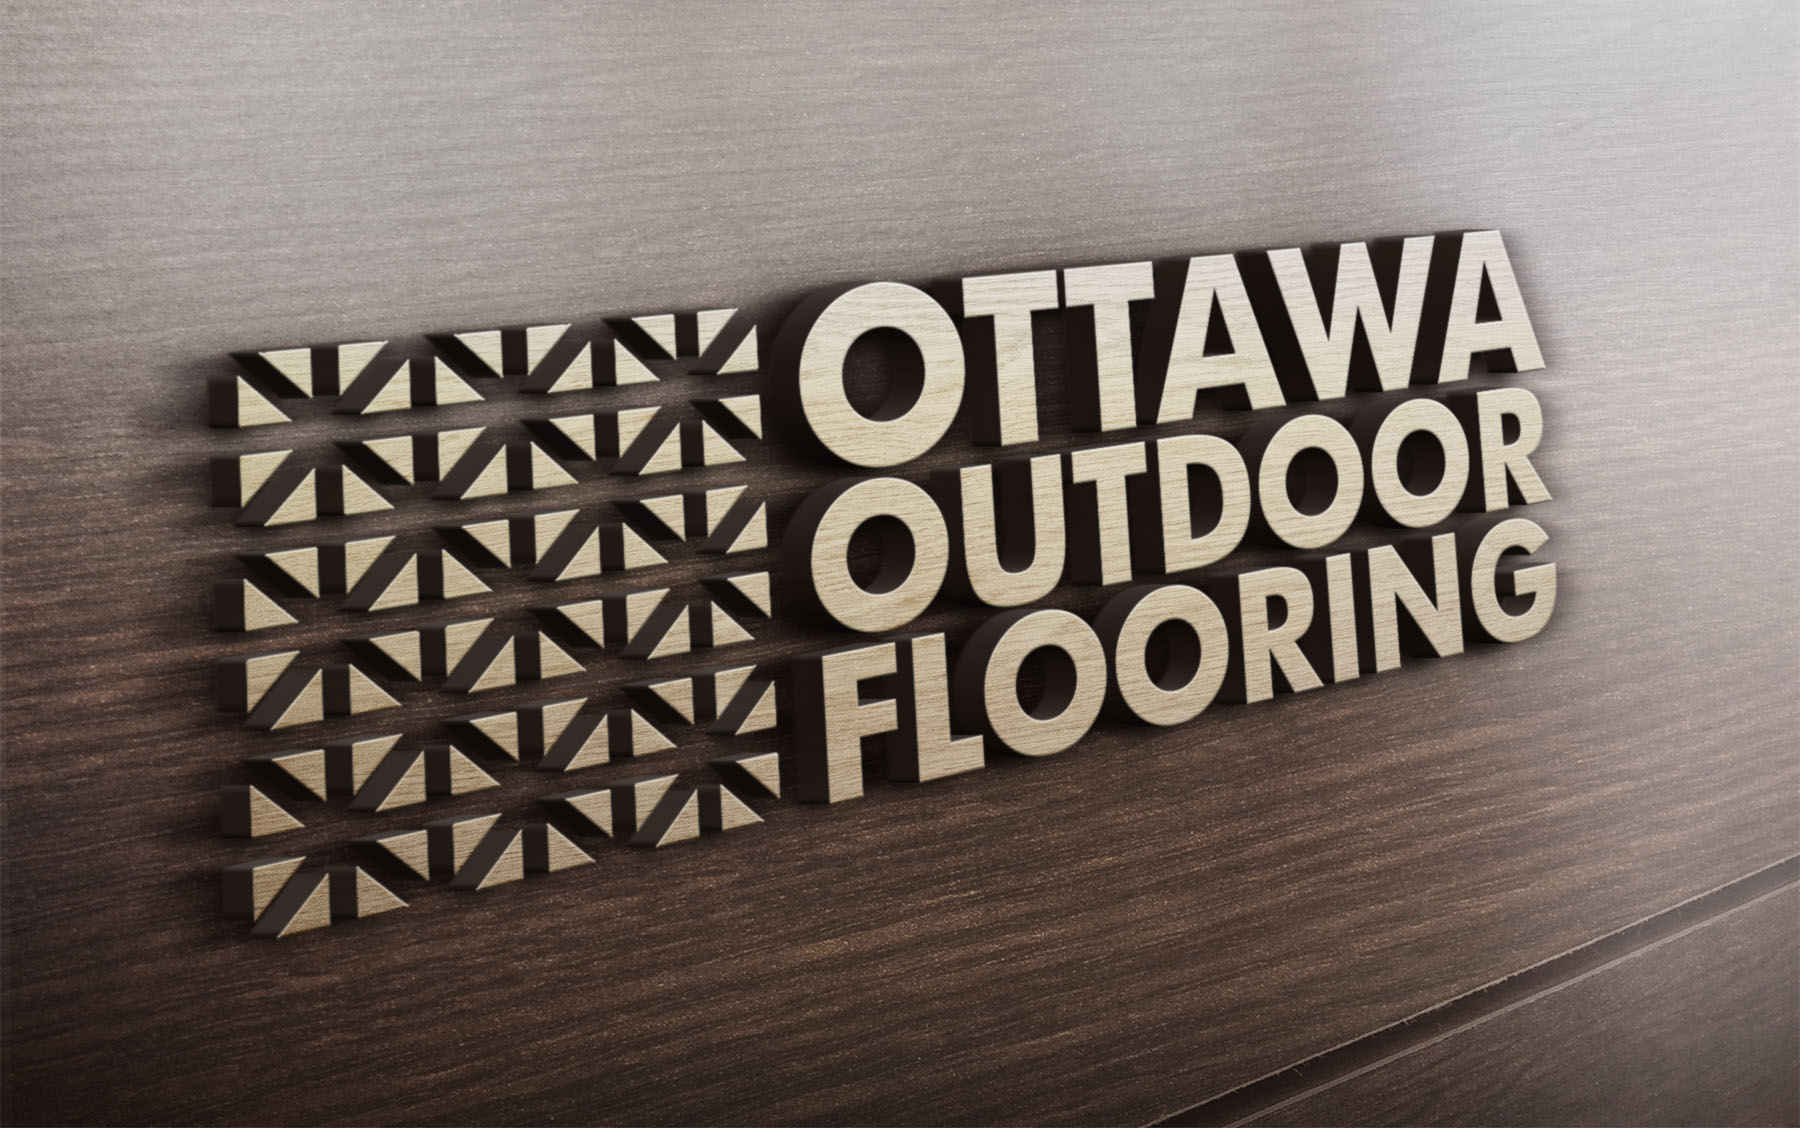 Ottawa Outdoor Flooring Condo Tiles